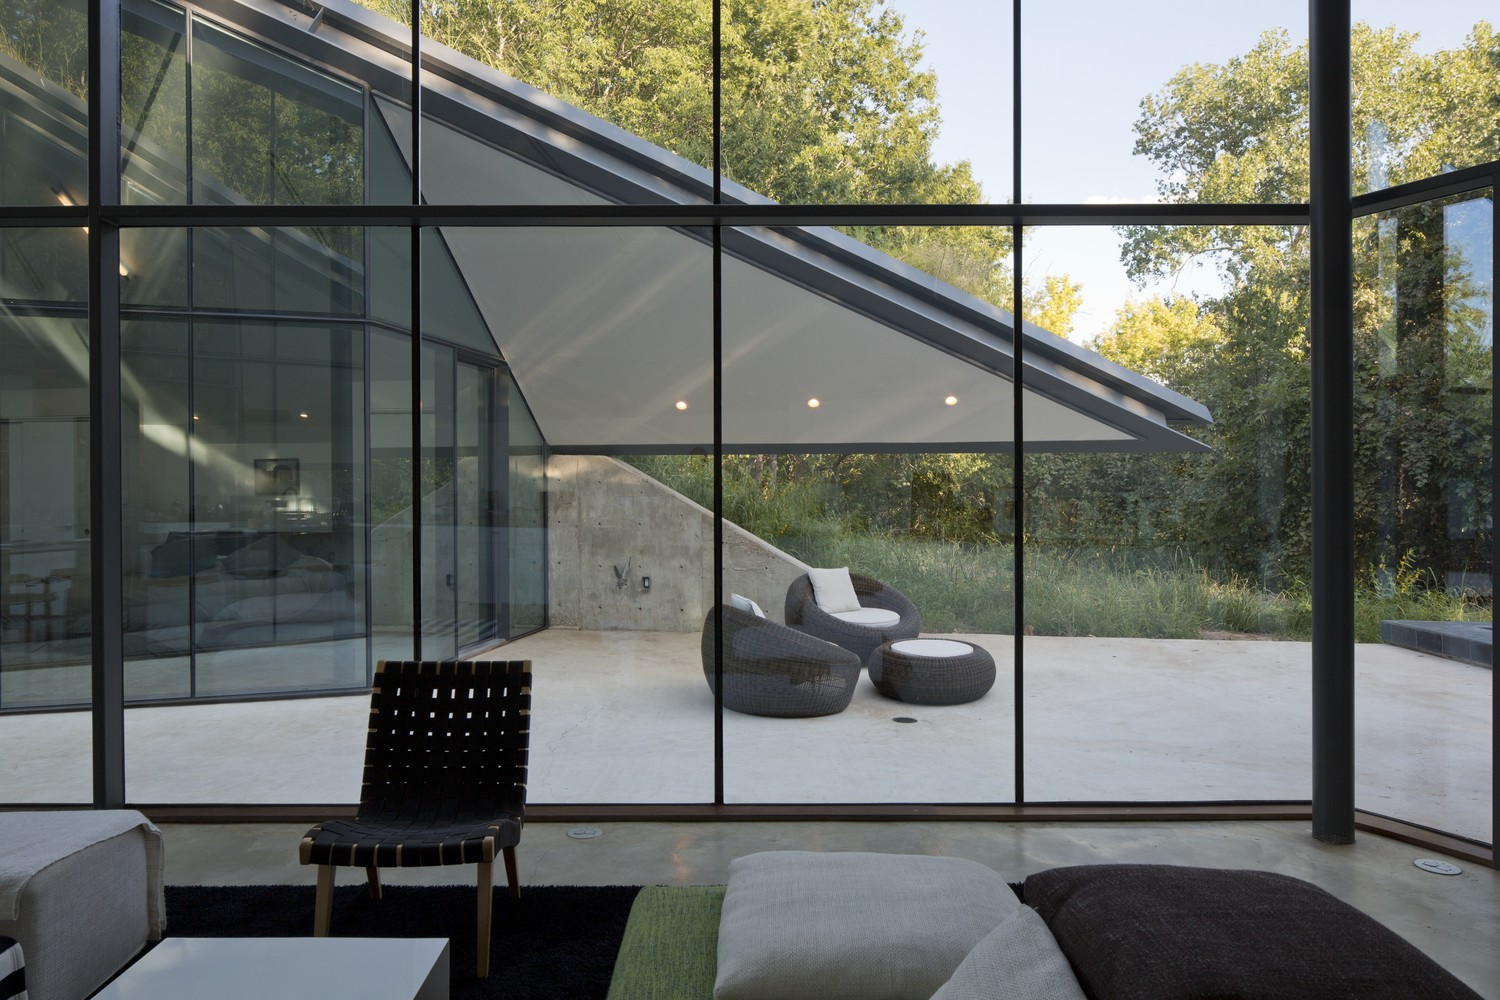 Edgeland House's glass walls